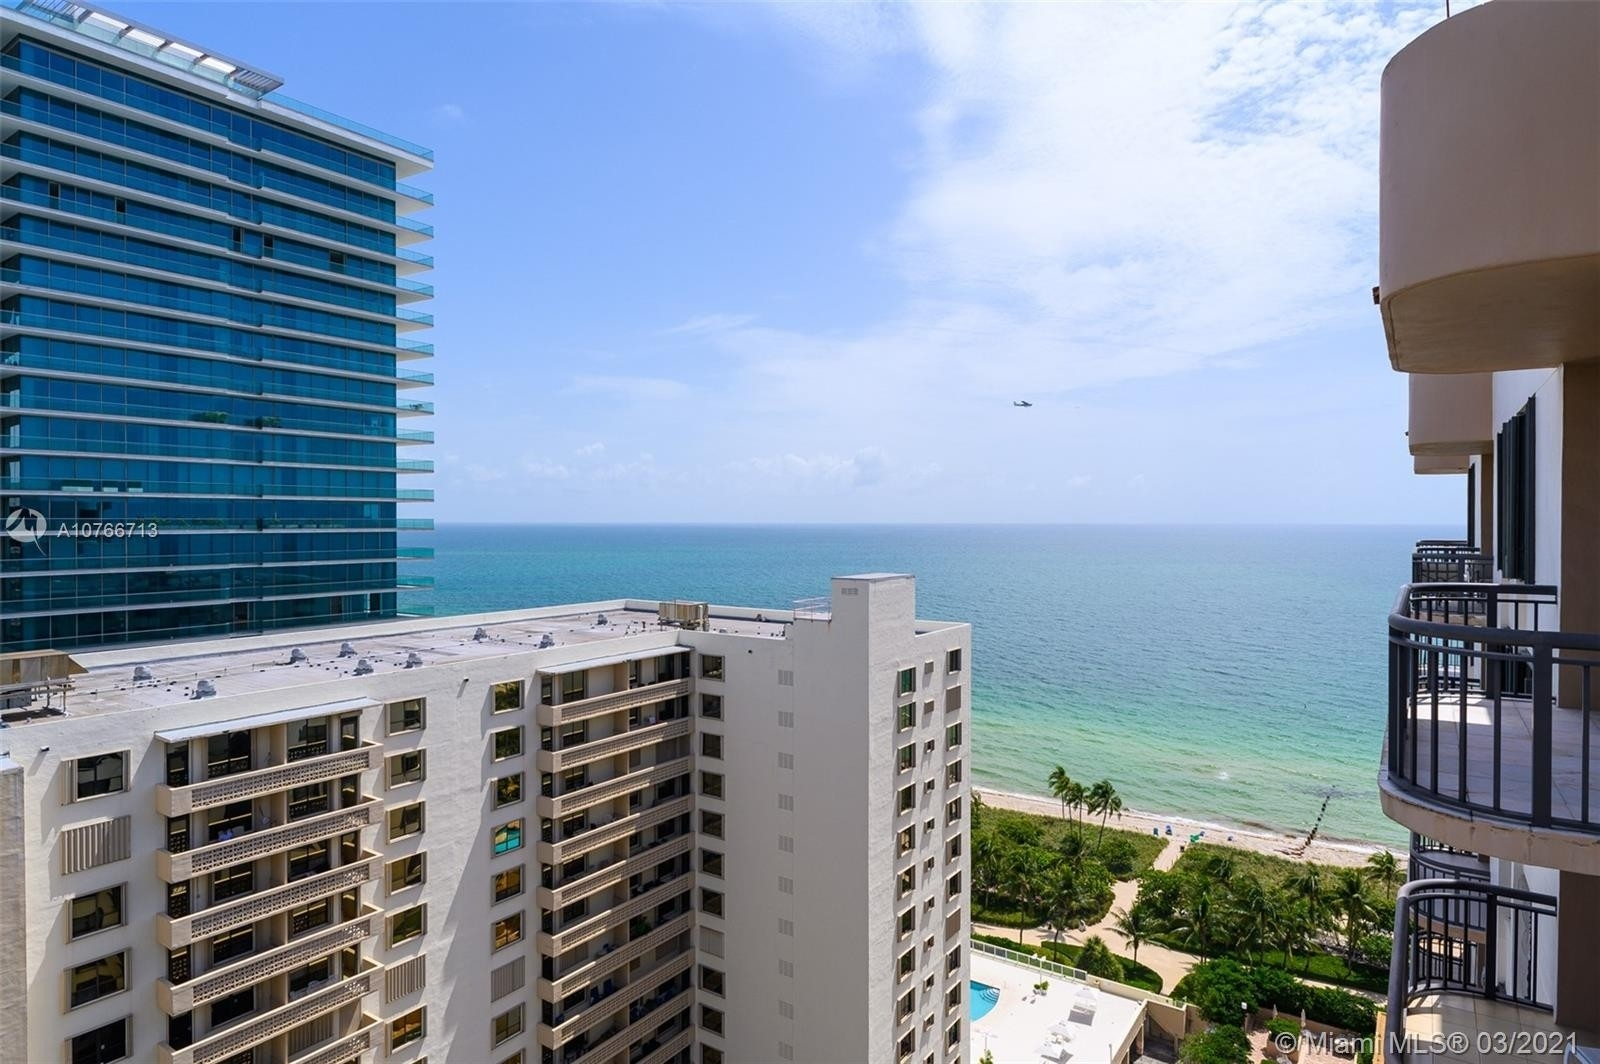 3. Condominiums for Sale at 10175 Collins Ave , PH5 Bal Harbour, FL 33154